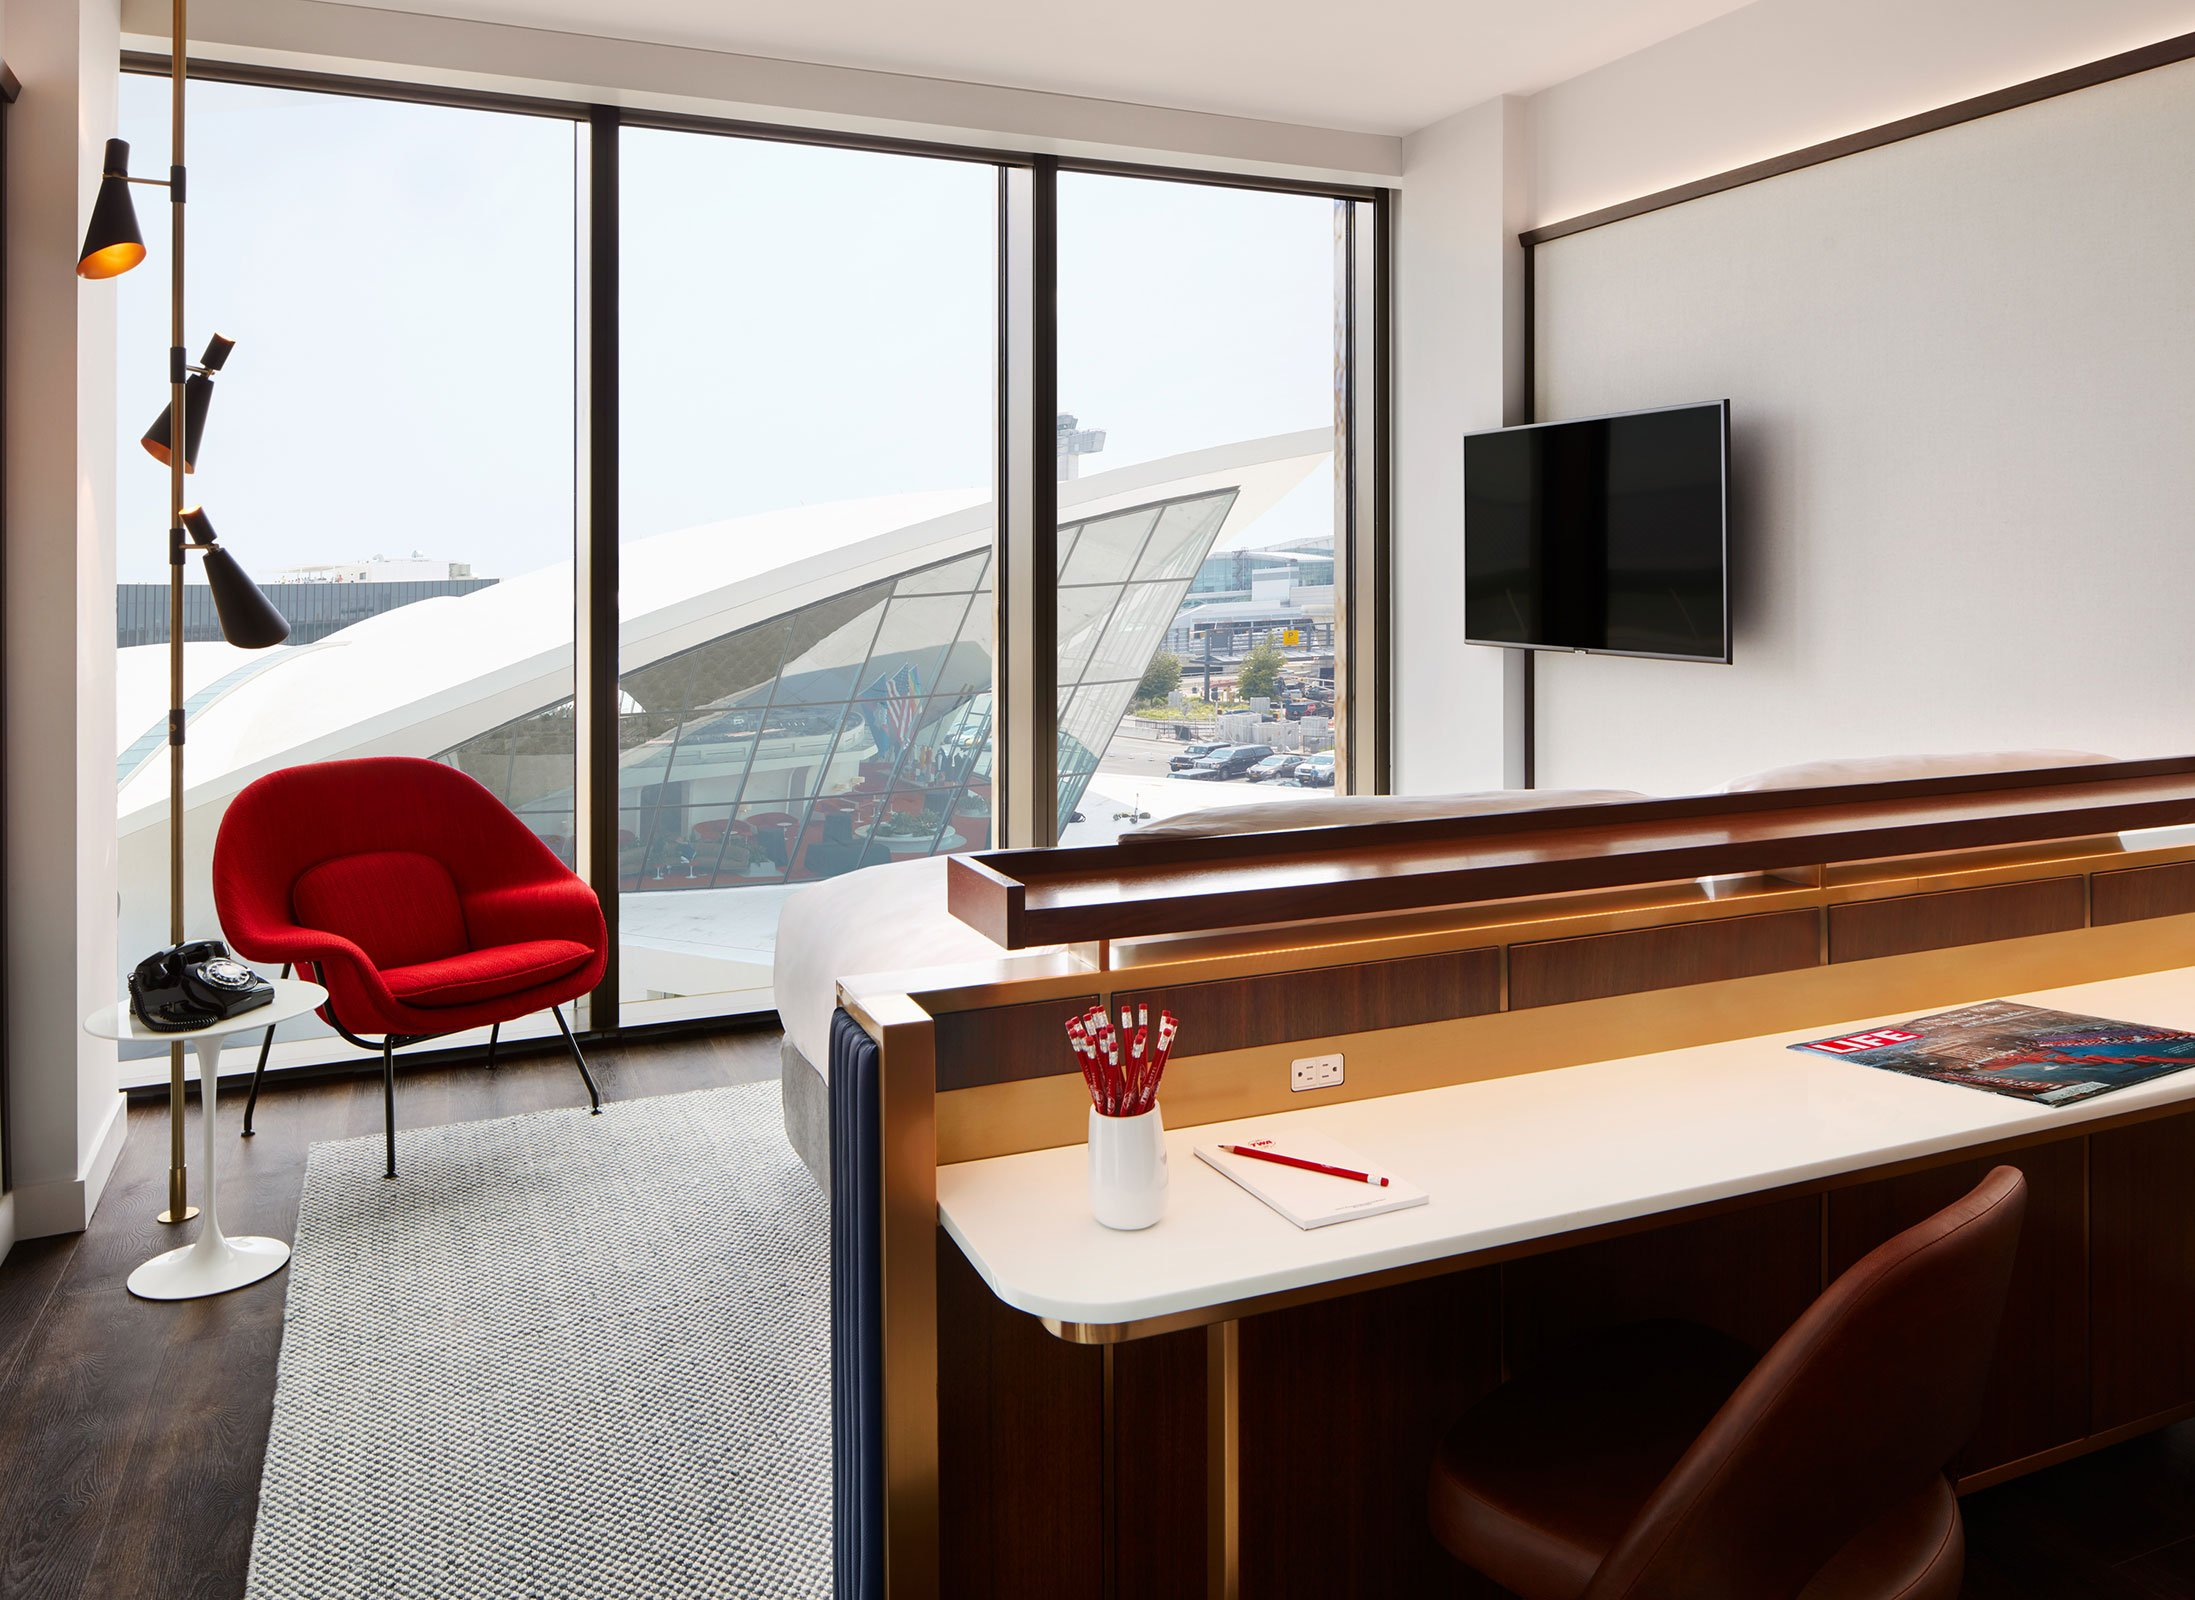 TWA Hotel Deluxe King With Historic TWA View